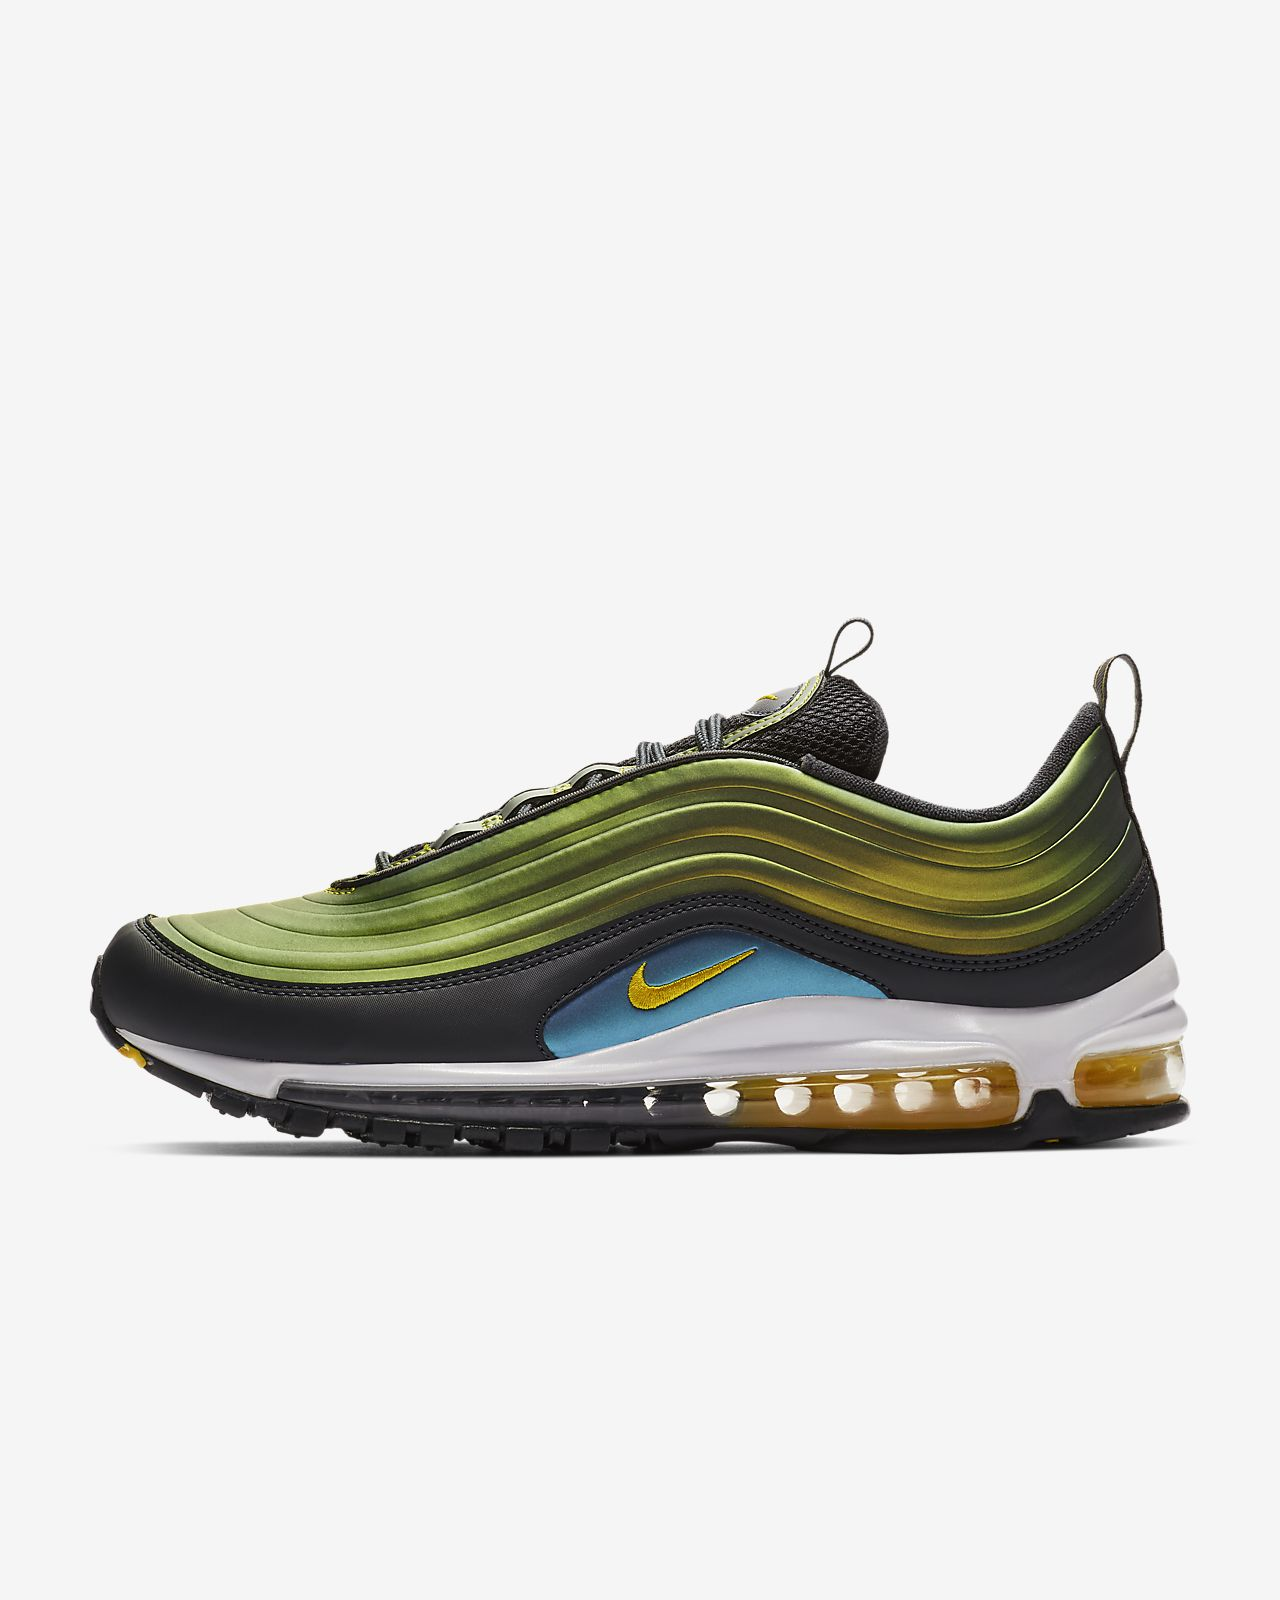 best service e22b2 a5e49 Nike Air Max 97 LX Men's Shoe